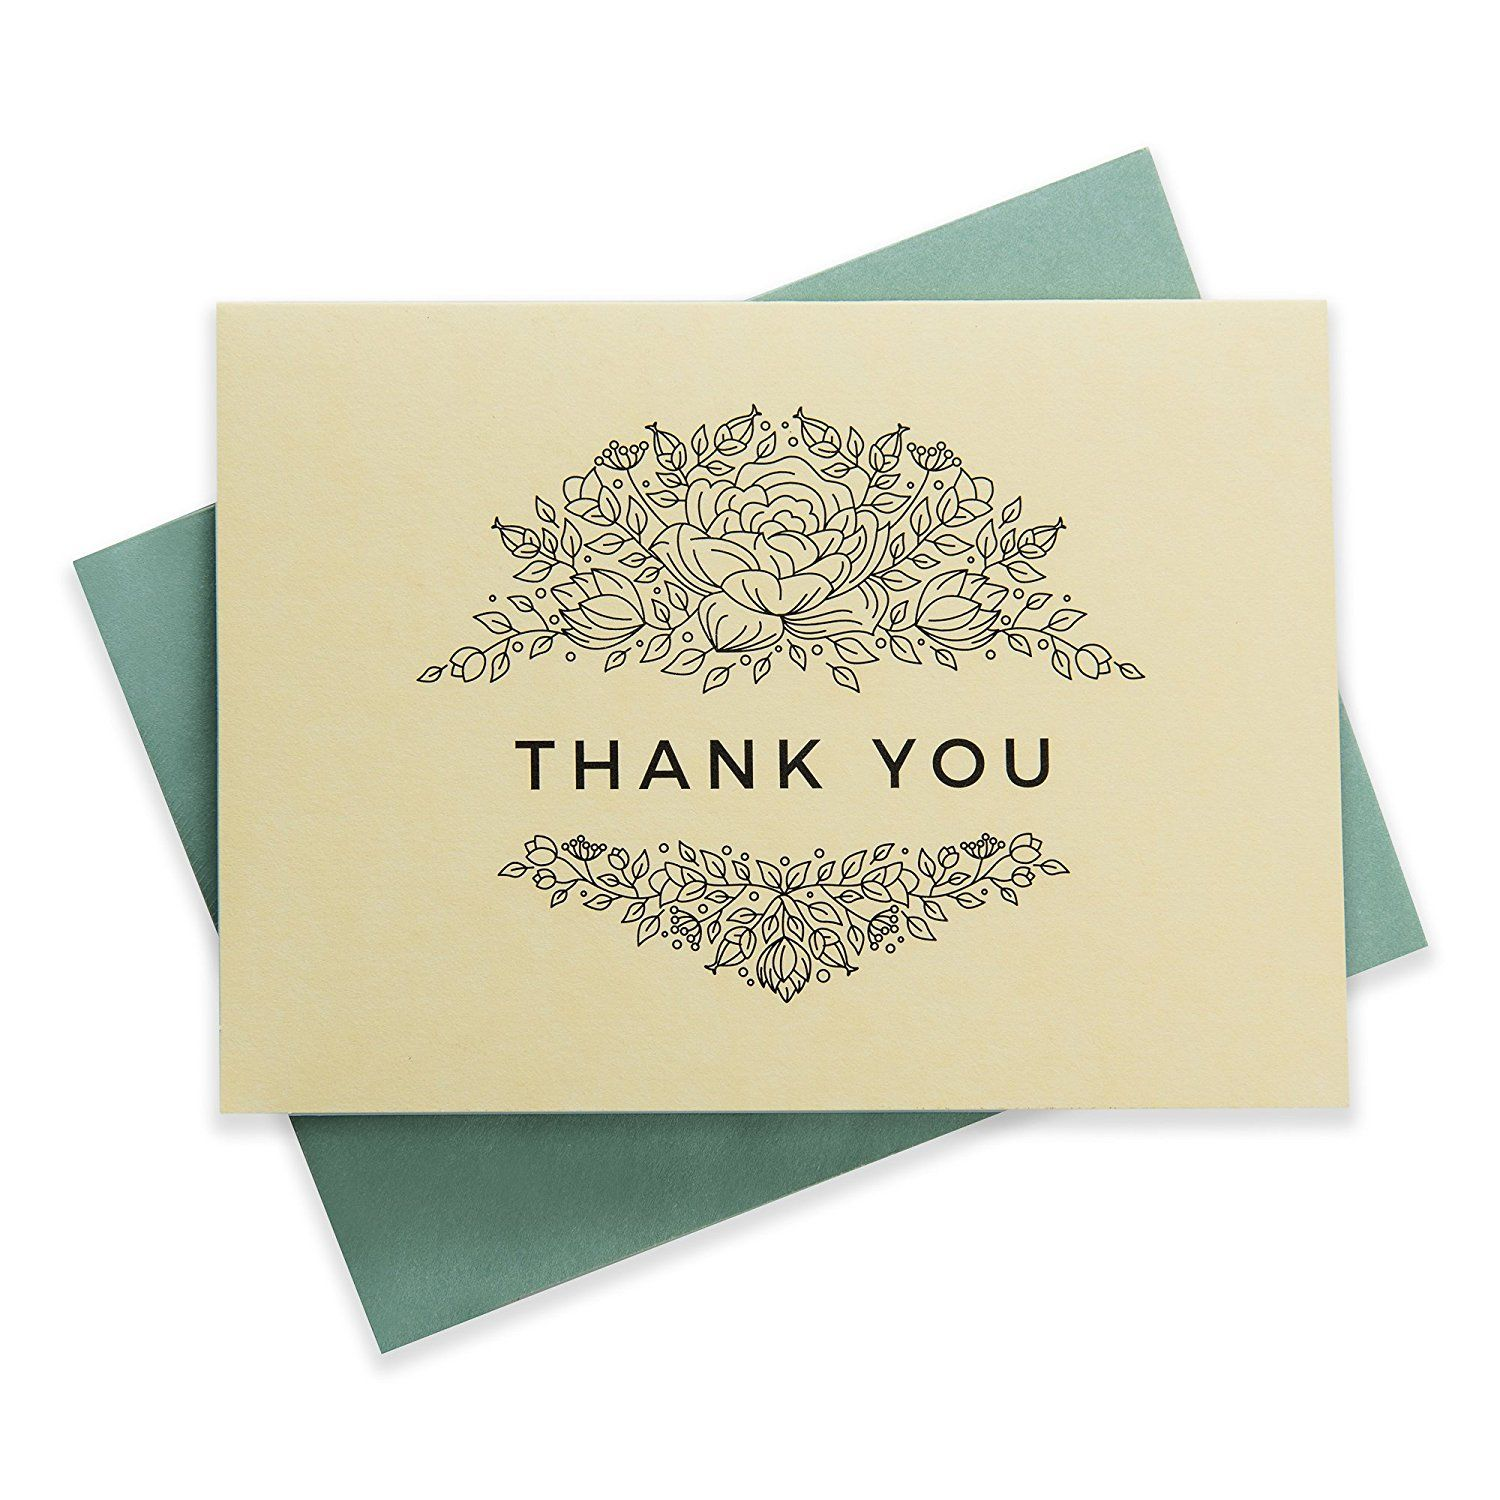 Fl Thank You Cards Bulk Box Set Of 48 Blank With